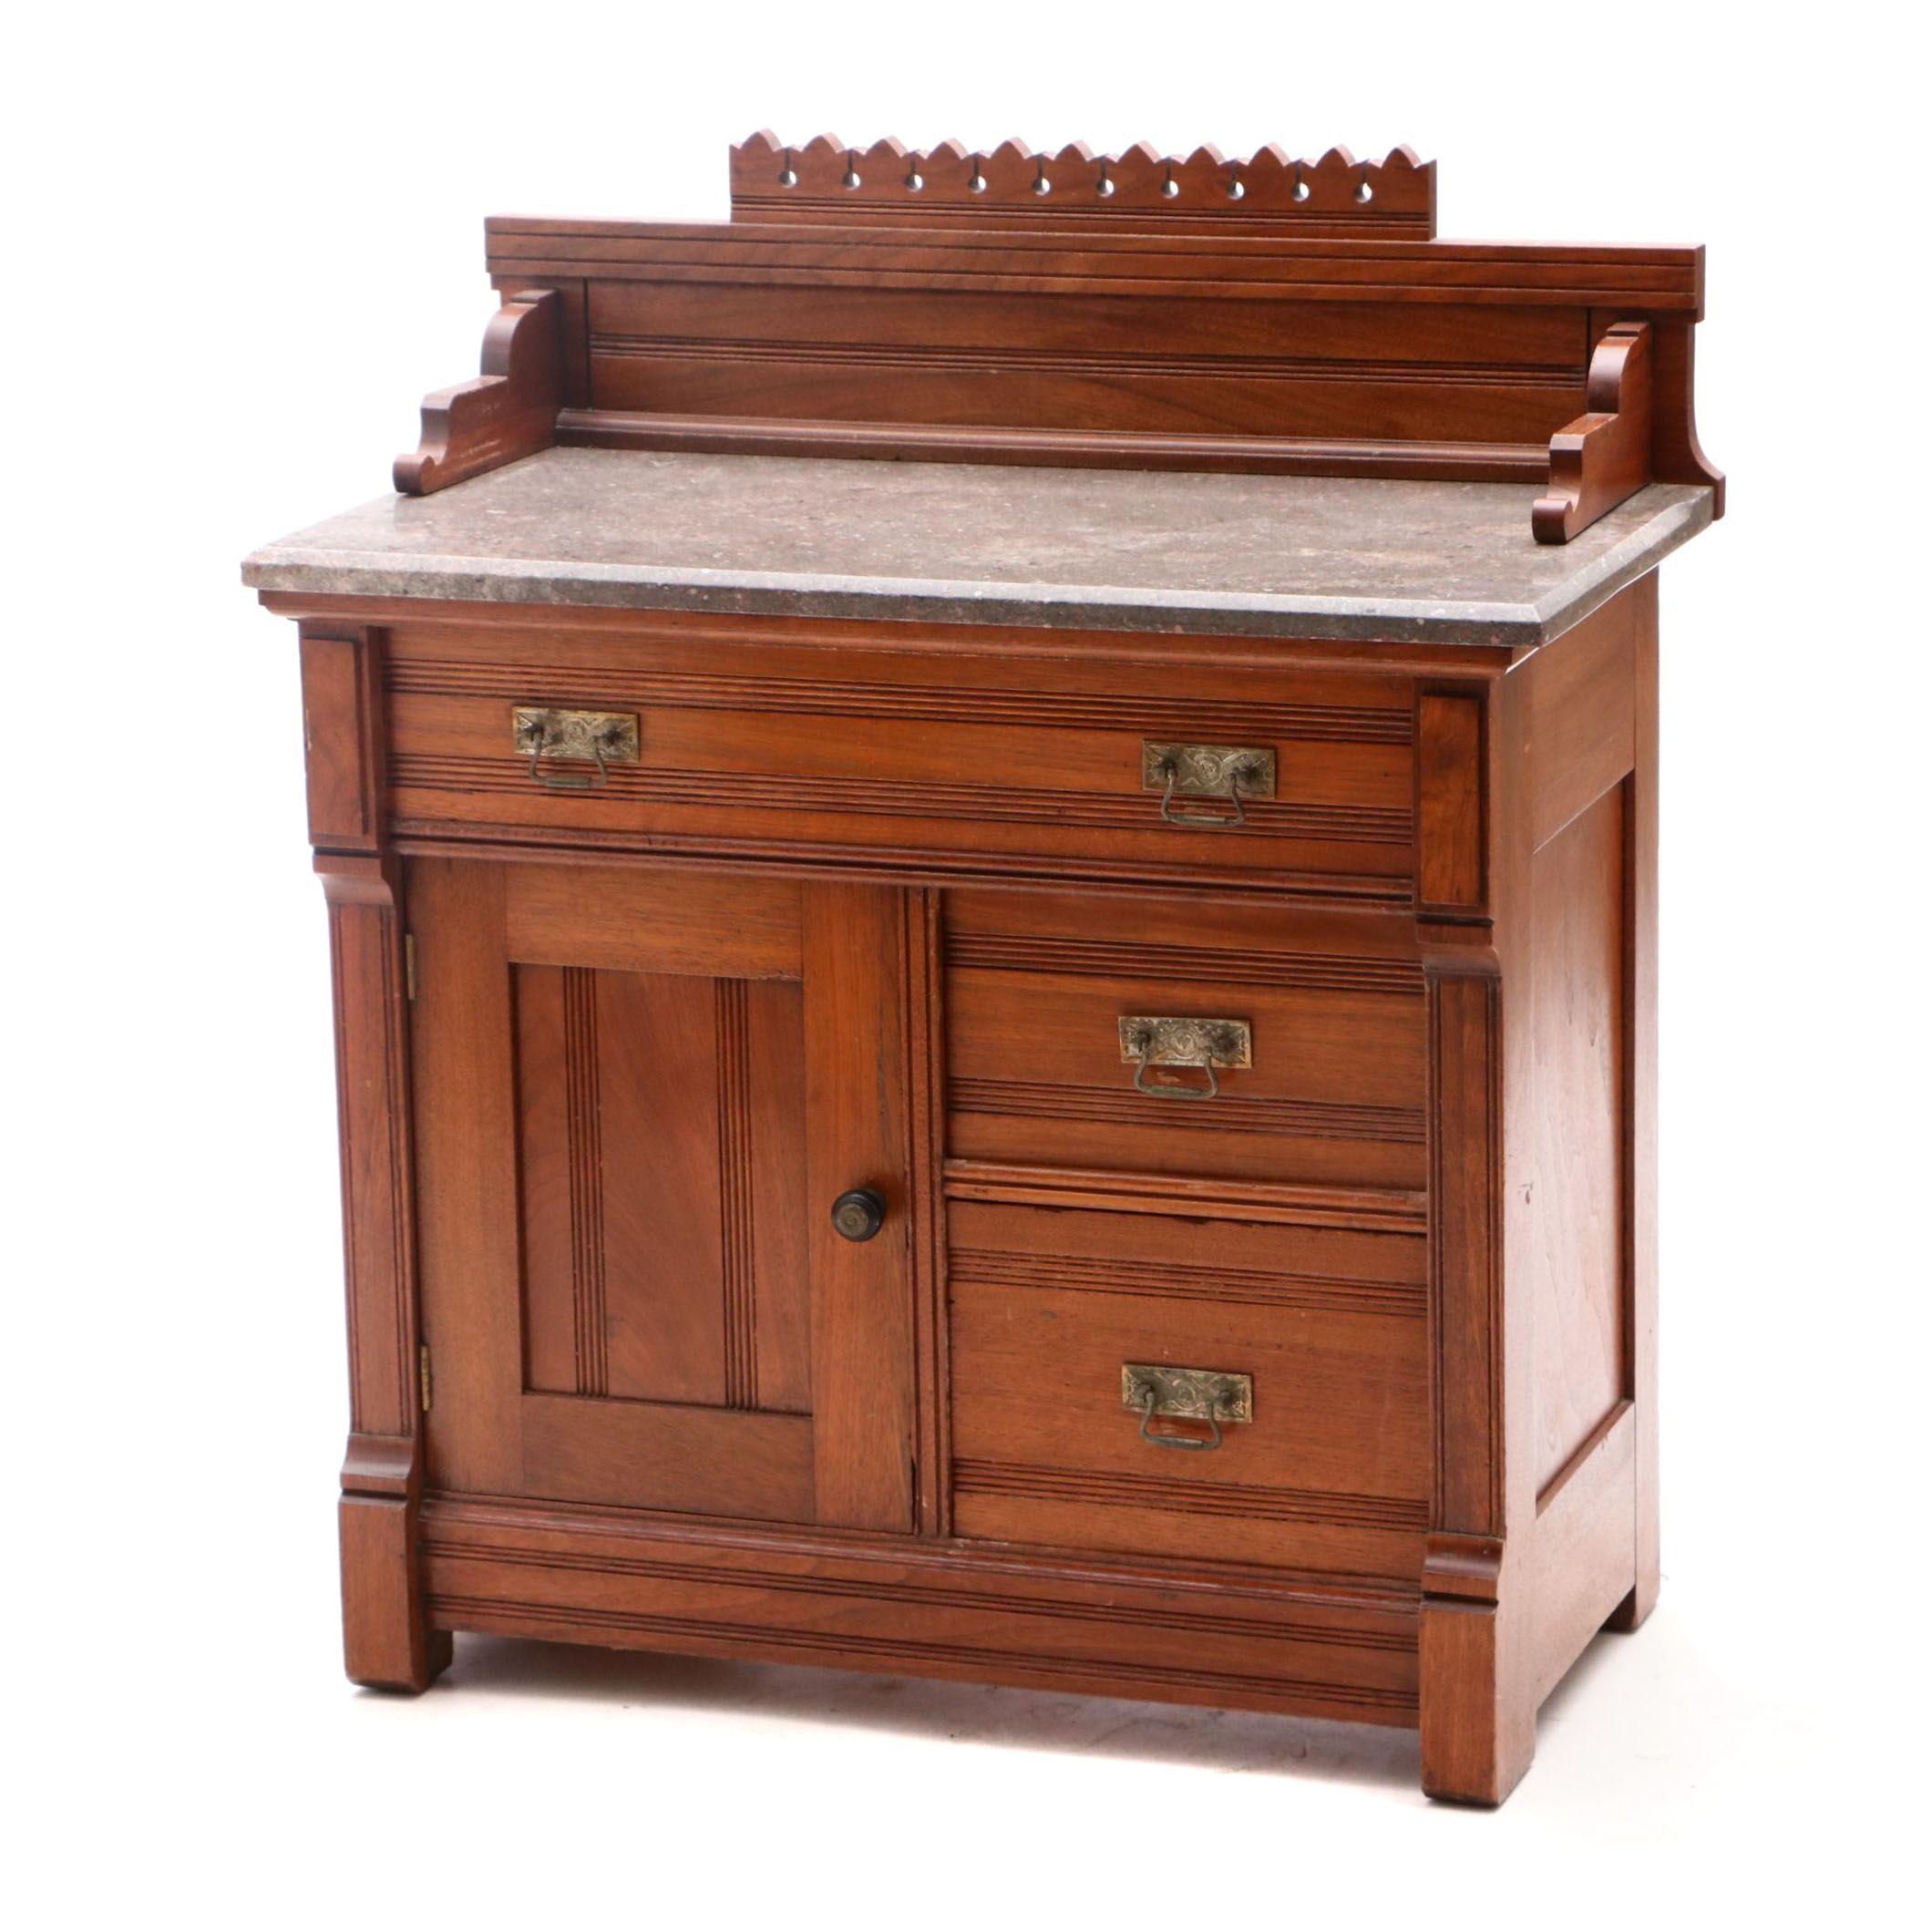 Eastlake Style Marble Top Wash Stand Cabinet in Oak by Berkey & Gay